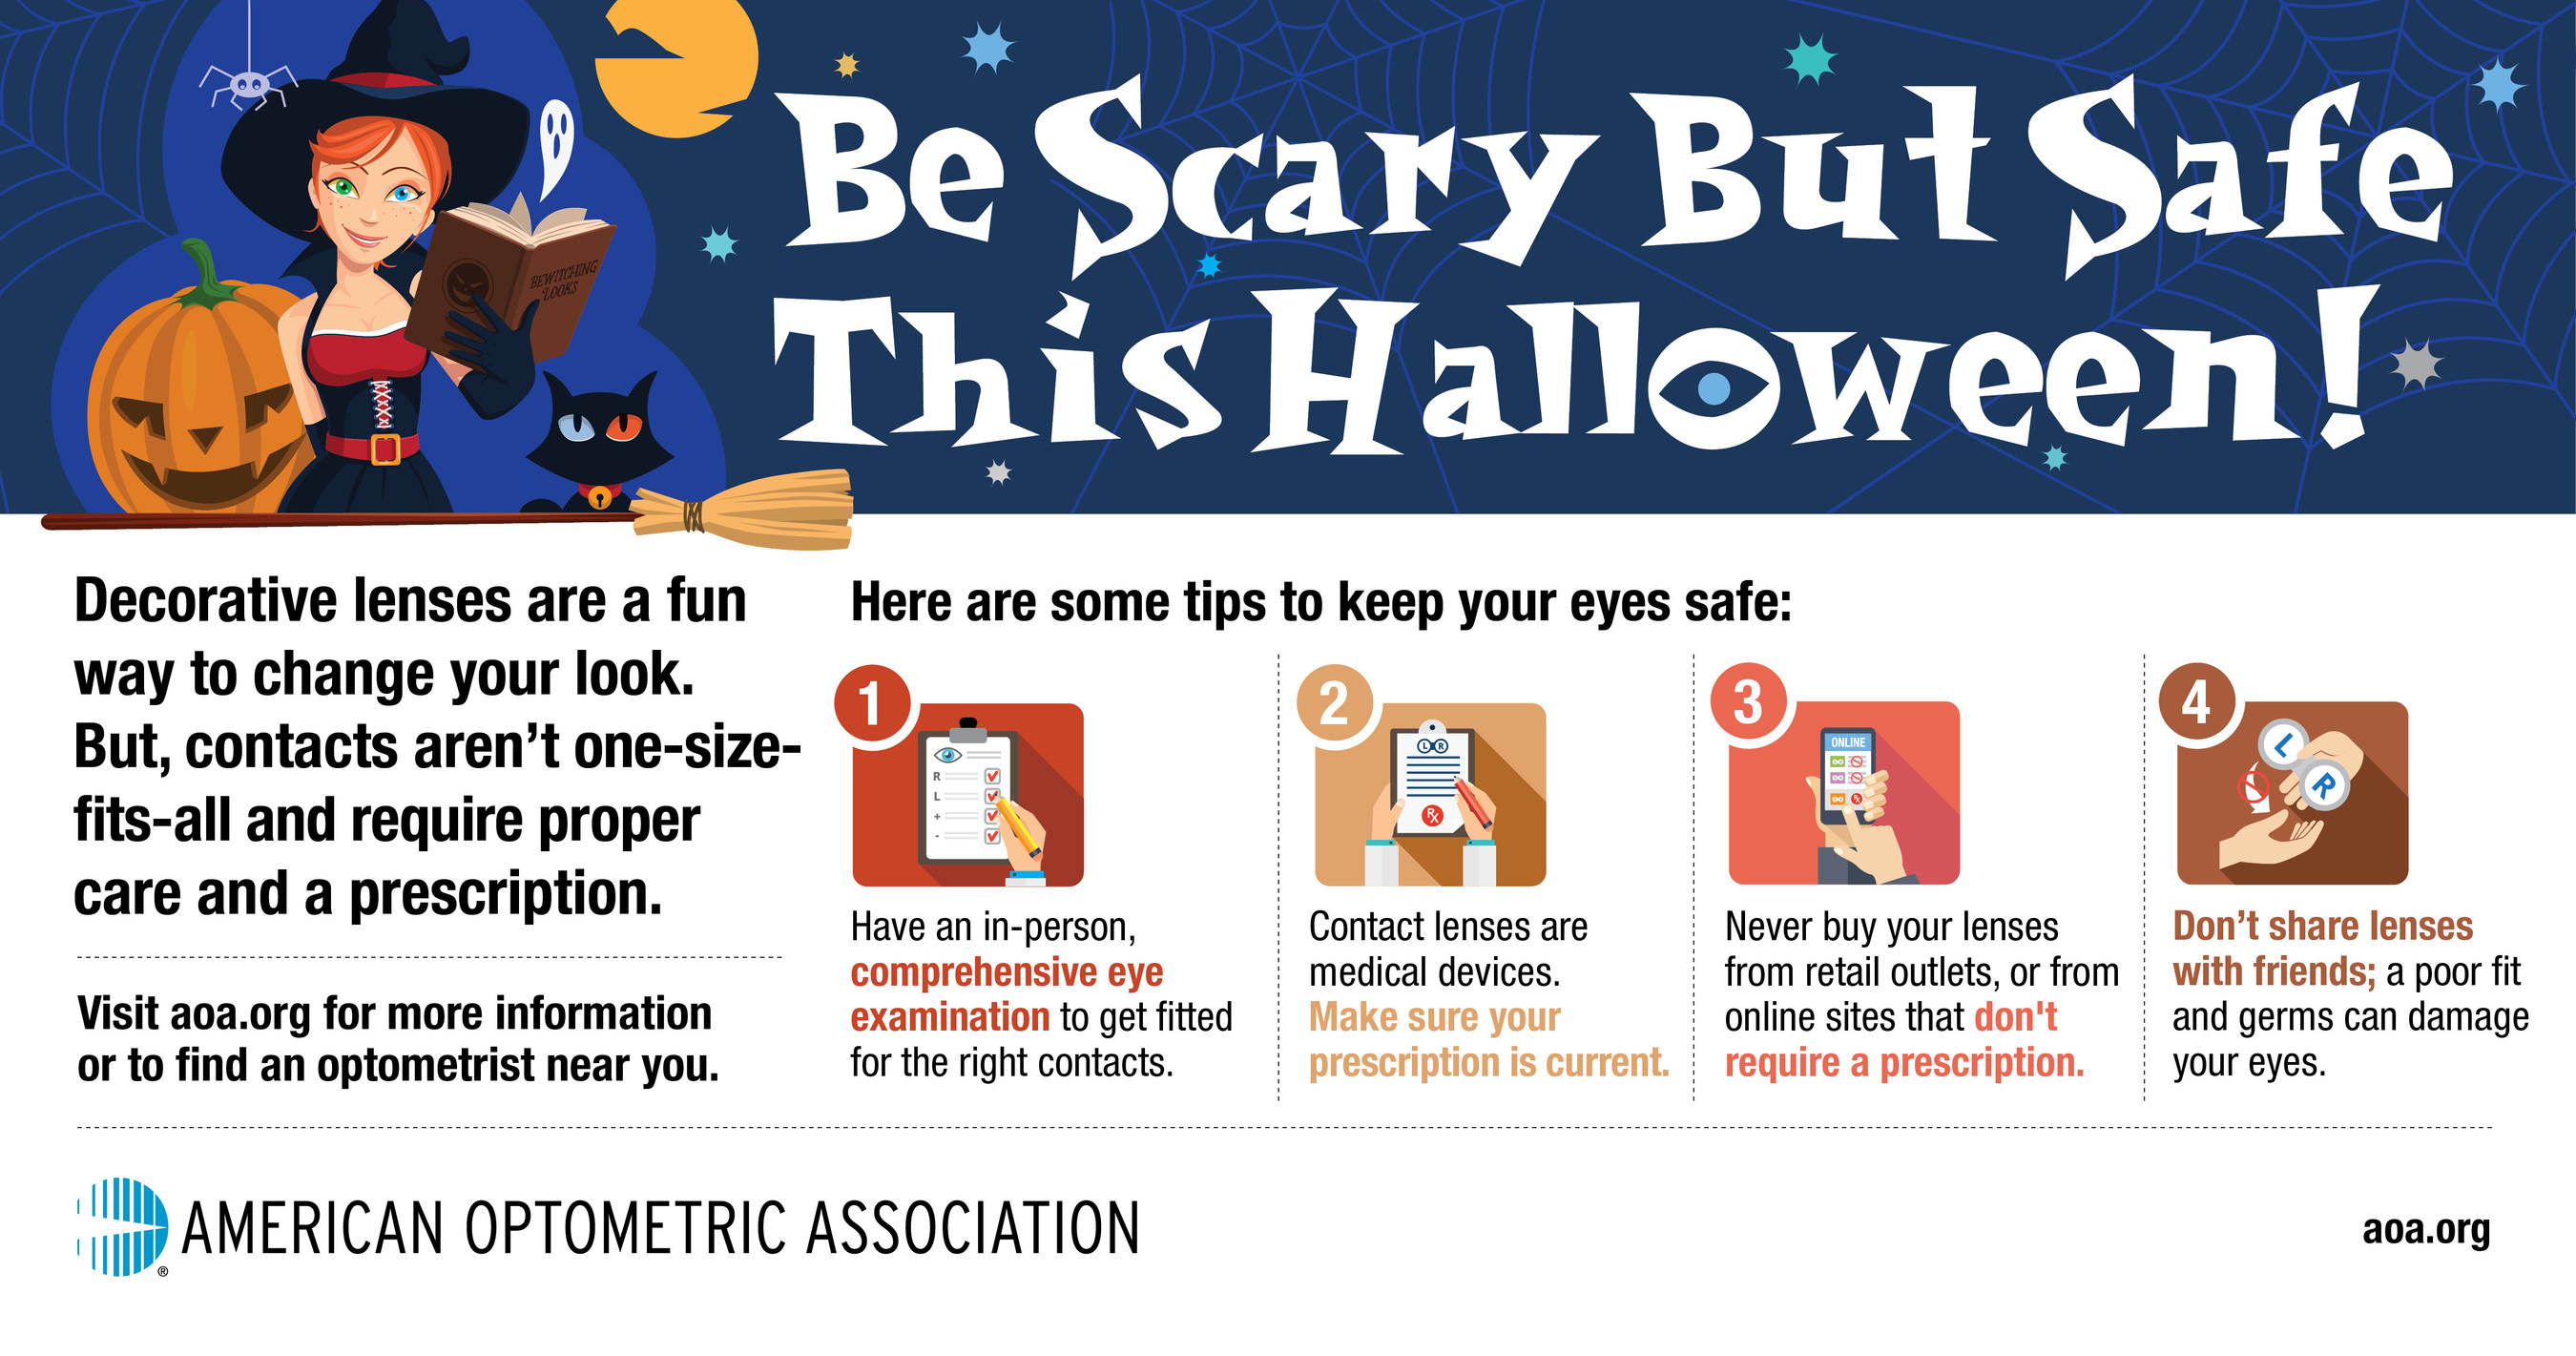 Make sure you have a valid prescription from your doctor of optometry for decorative contact lenses this Halloween.